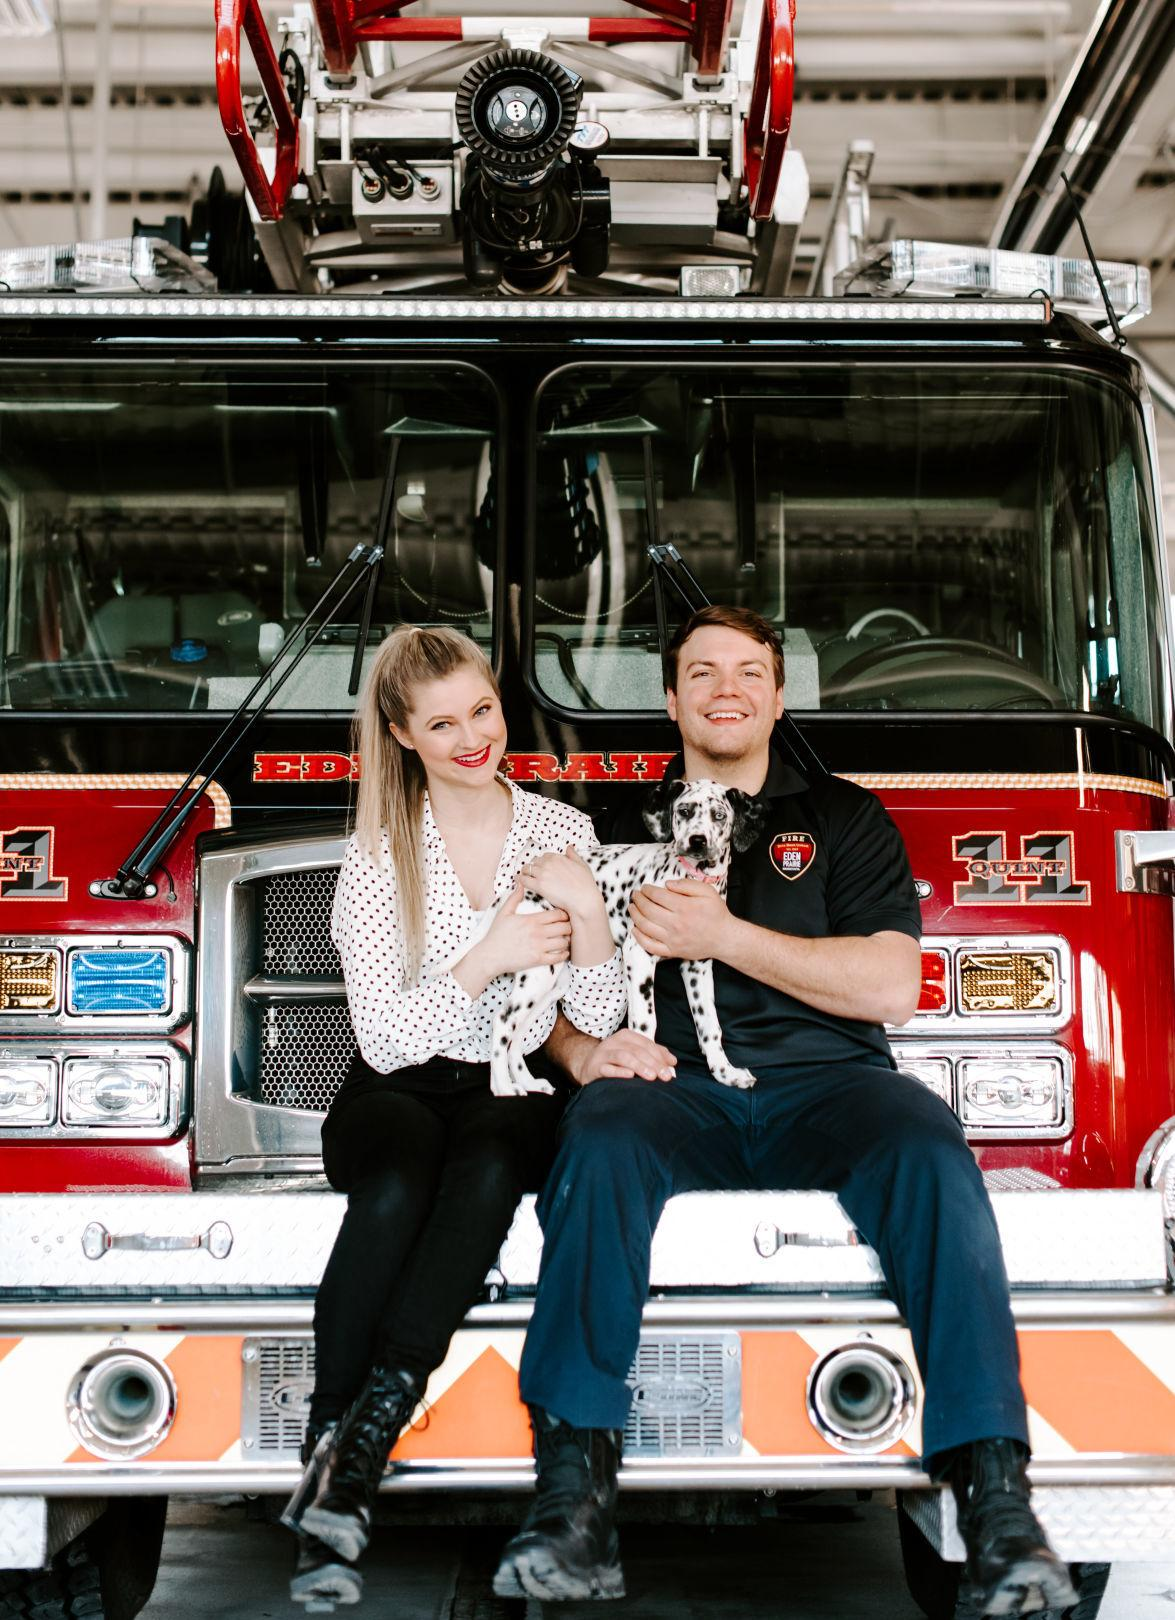 Fire station photoshoot